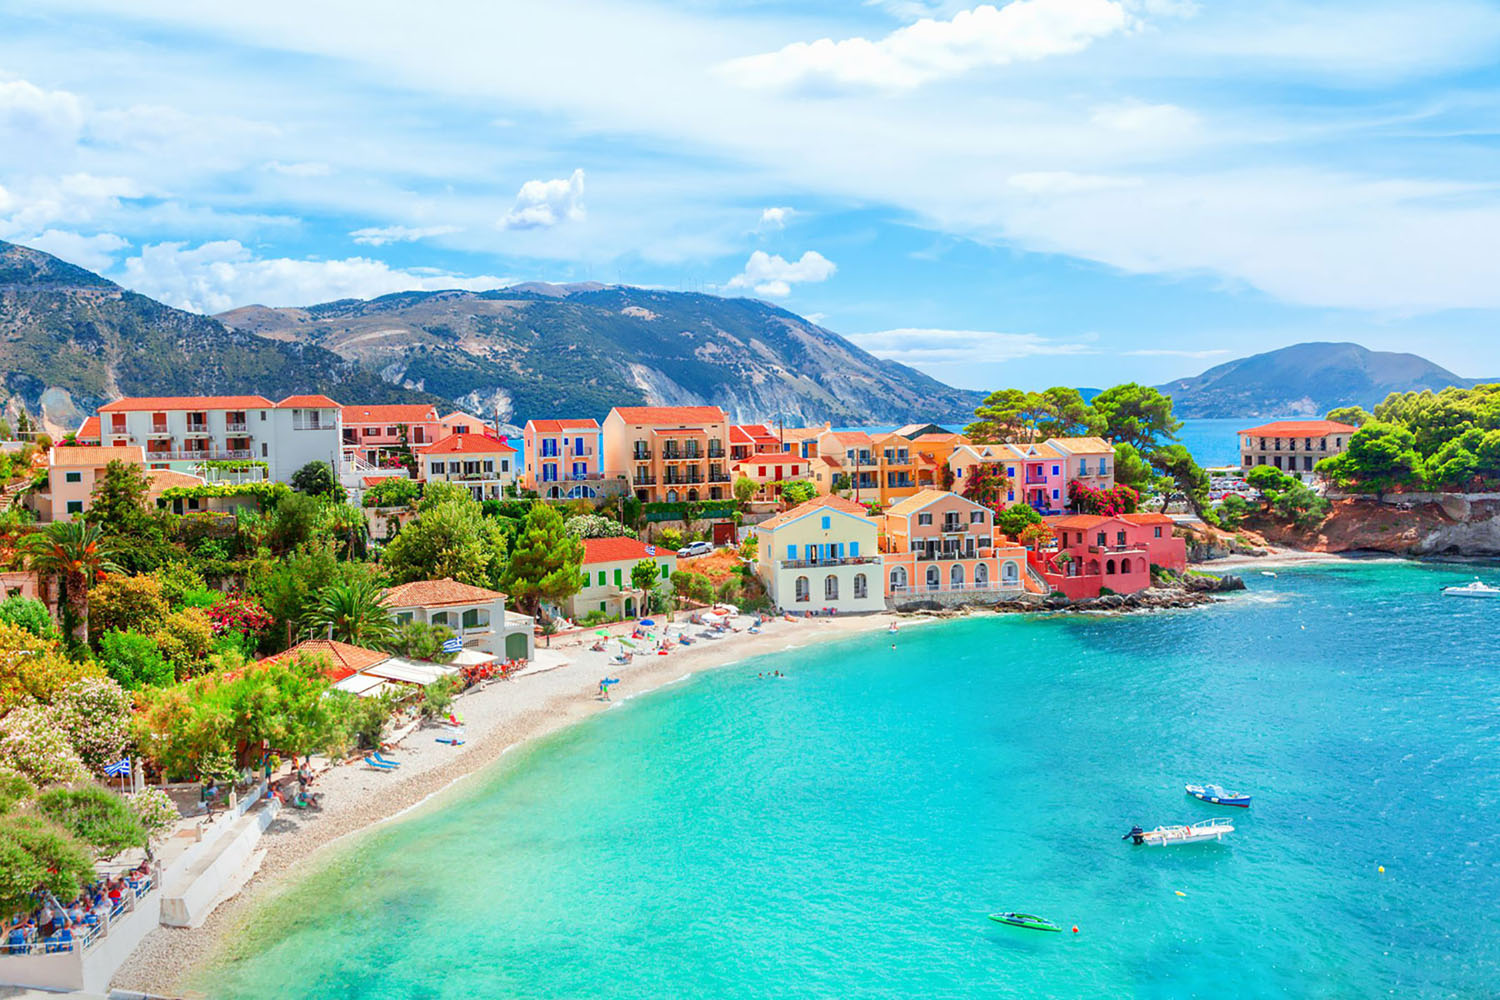 The village of Assos in Cephalonia, Greece with beautiful turquoise water